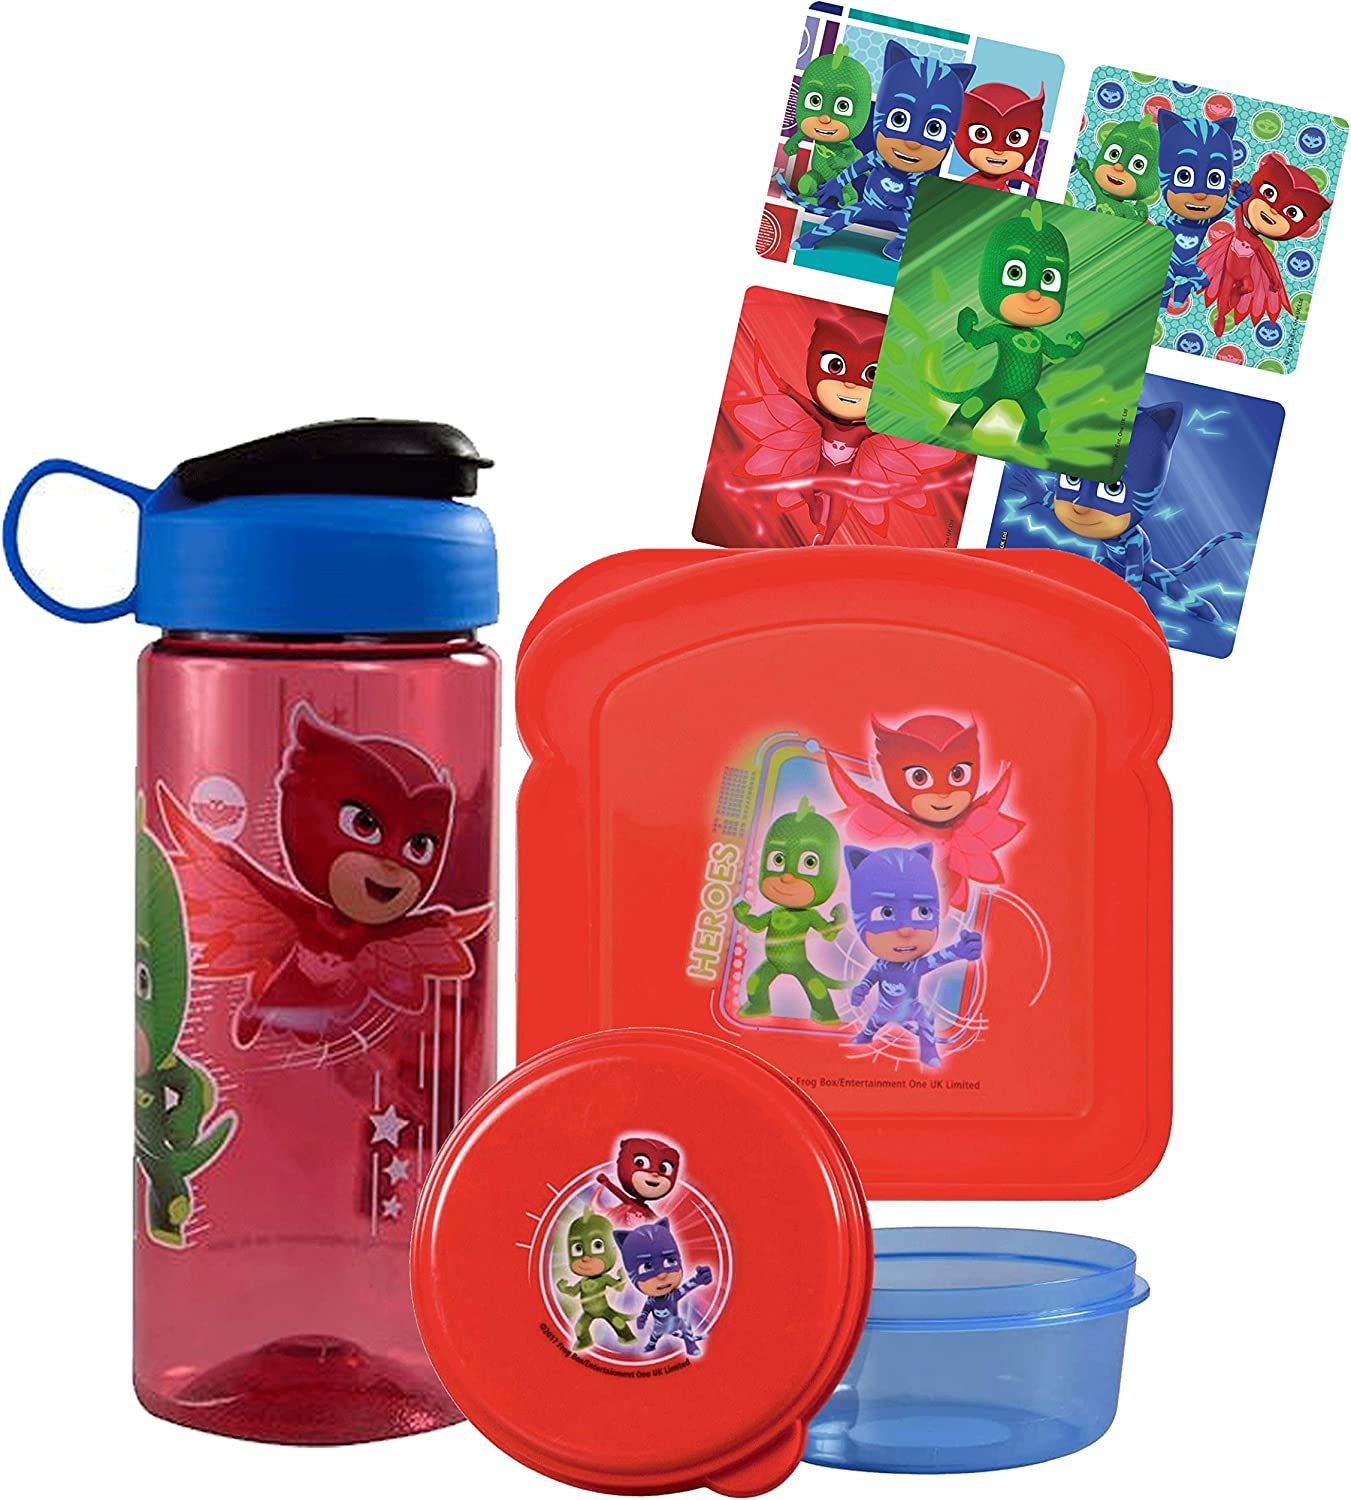 Kids Paw Patrol Reusable Bread Shaped Sandwich Container with Lid Red Blue